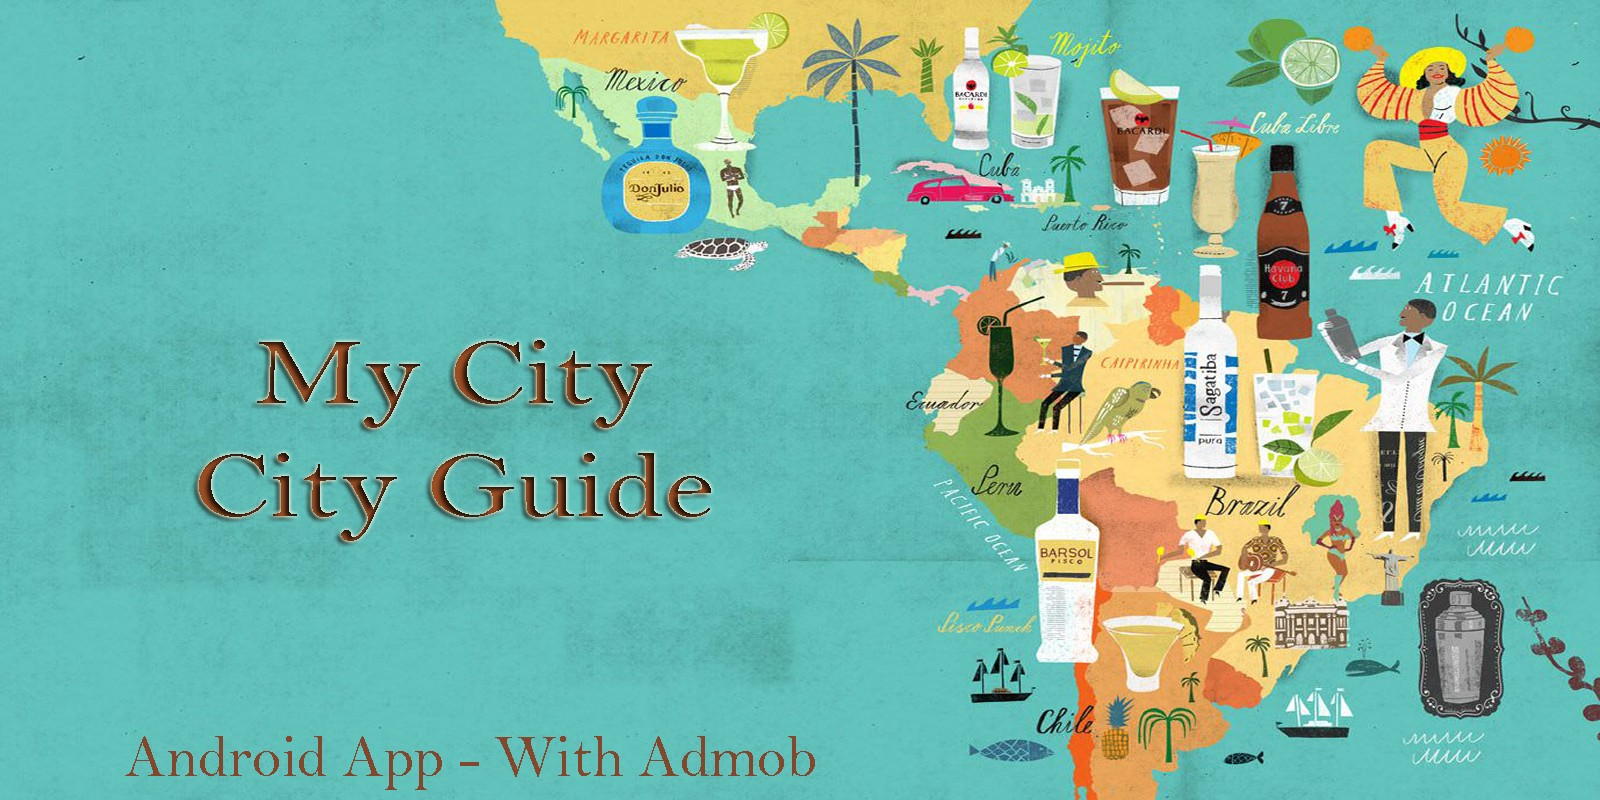 My City - City Guide Android Source Code